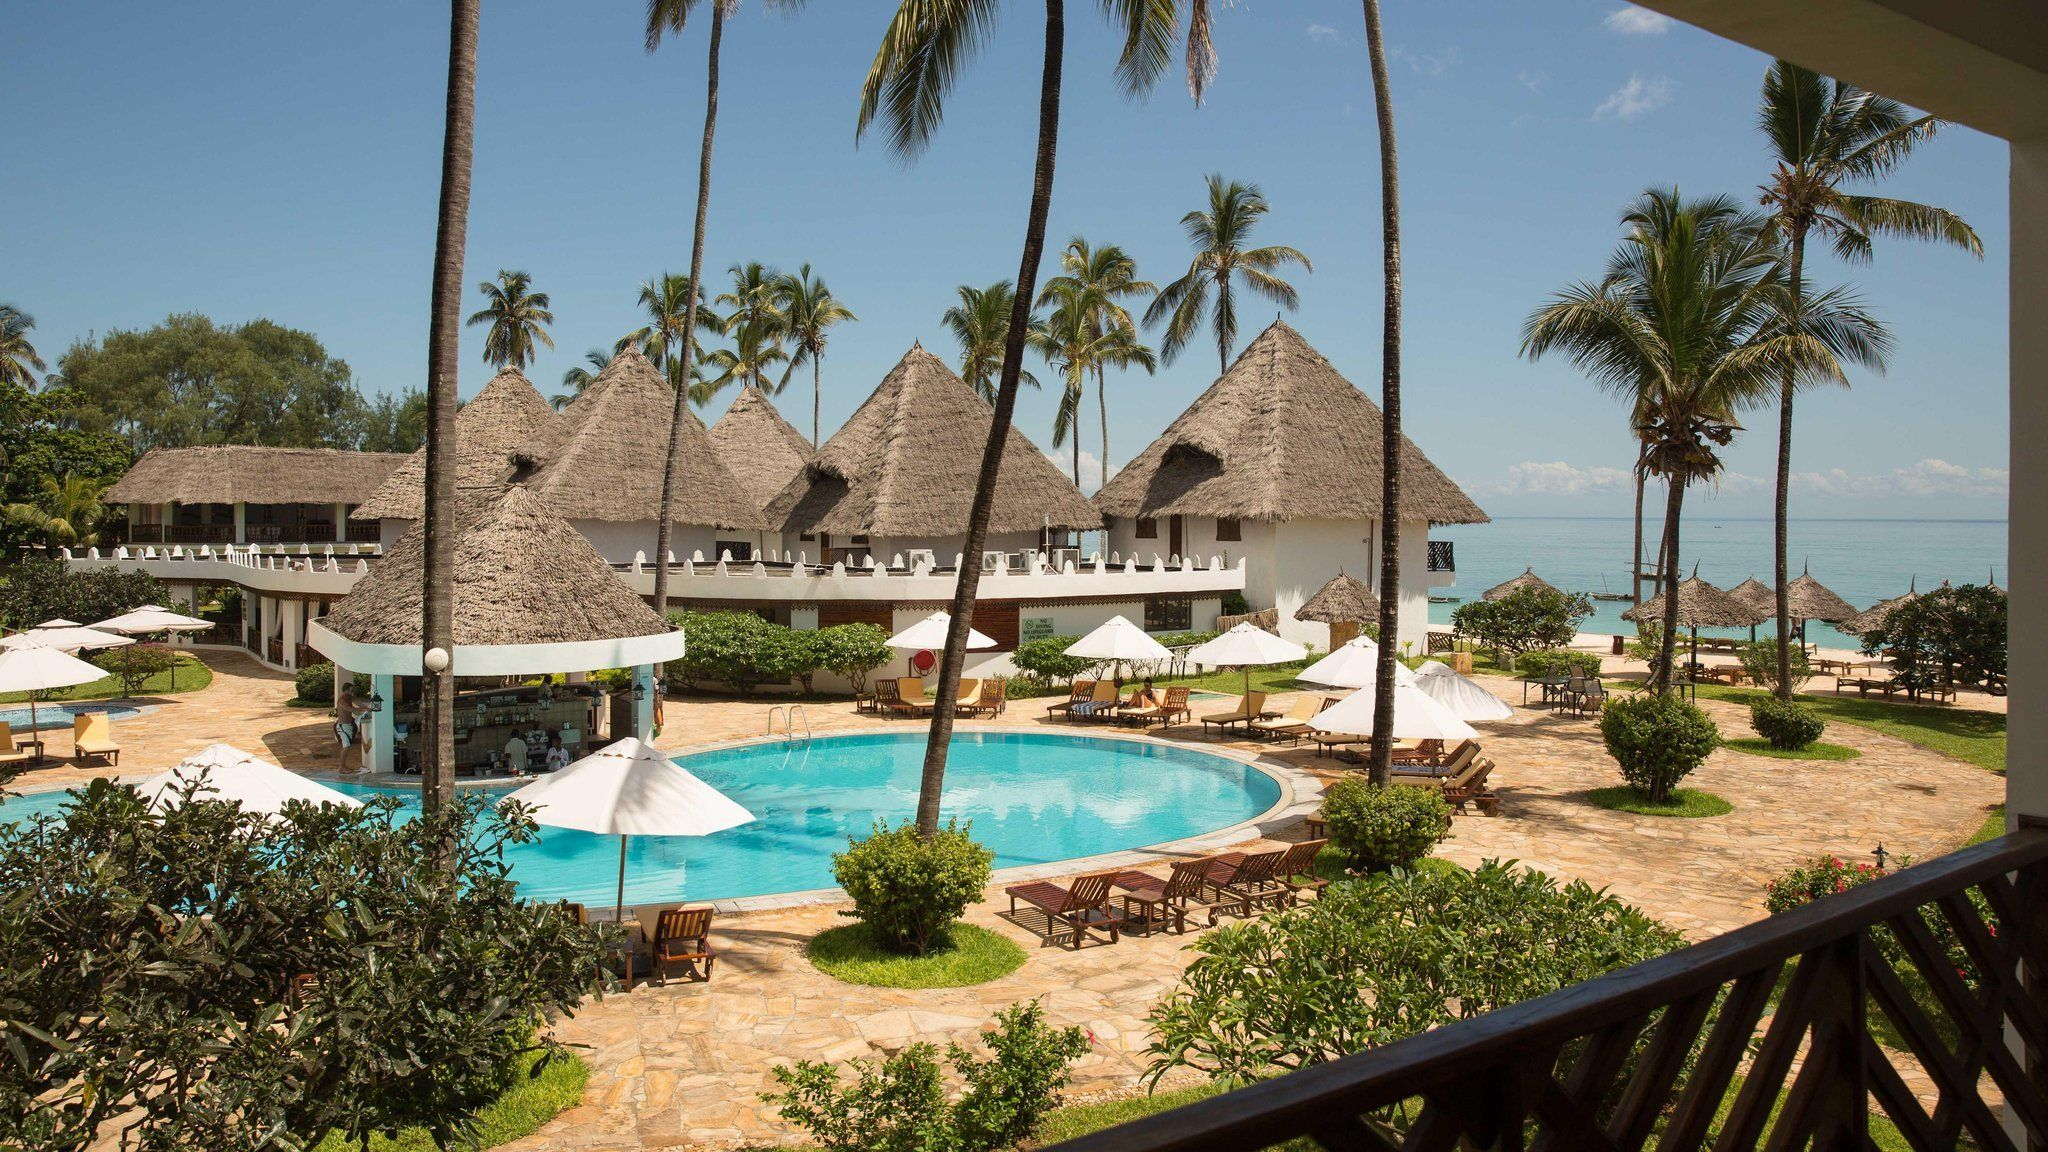 Doubletree By Hilton Resort Zanzibar Nungwi Twin Room Queen Room With Sea View 1 Hour 20 Minutes From Airport Premium Hotel